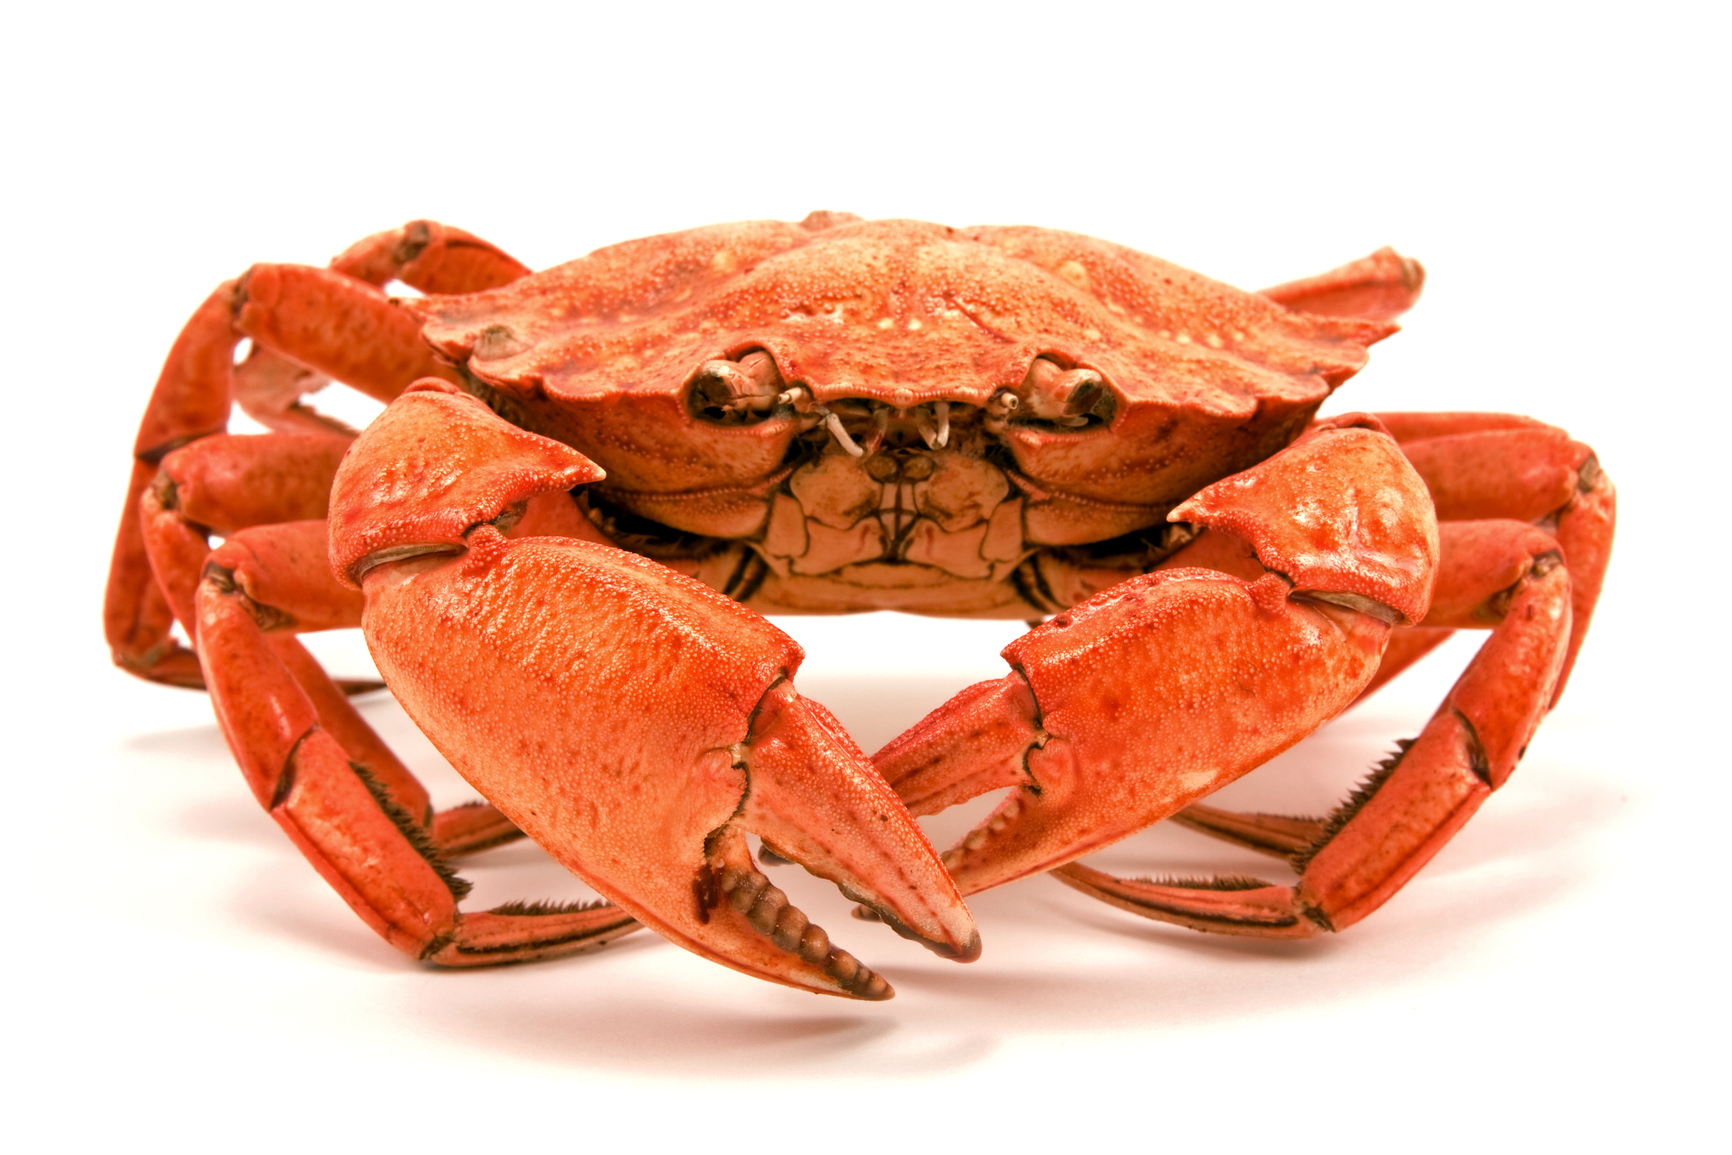 Red boiled crab – The Atlas Edge Staffing Services